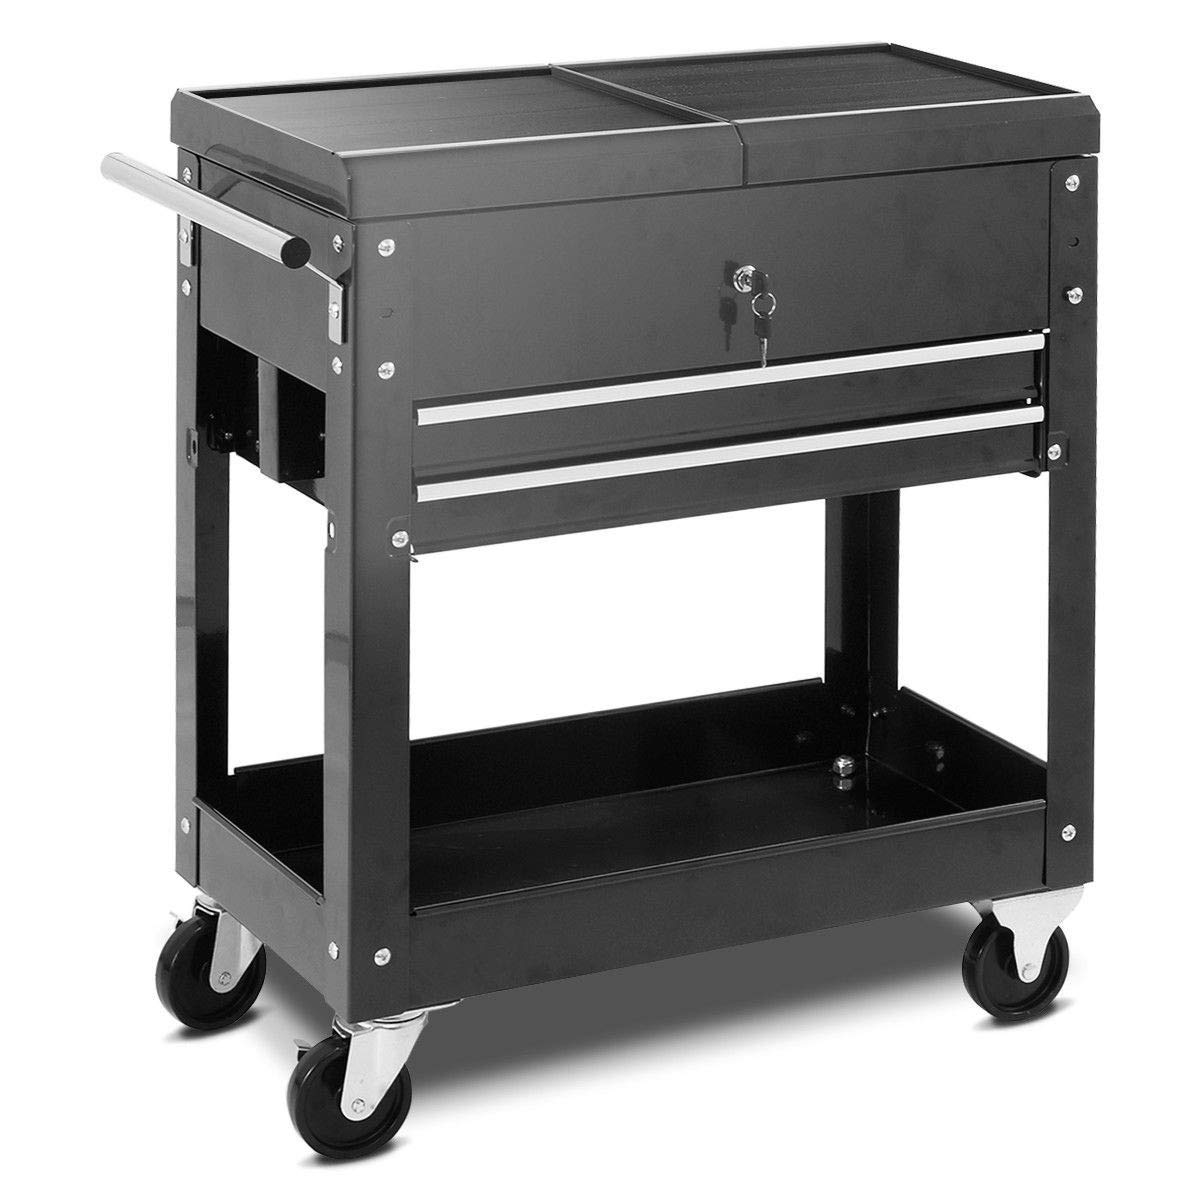 MRT SUPPLY Rolling Mechanics Tool Cart Slide Top Utility Storage Cabinet Organizer 2 Drawer with Ebook